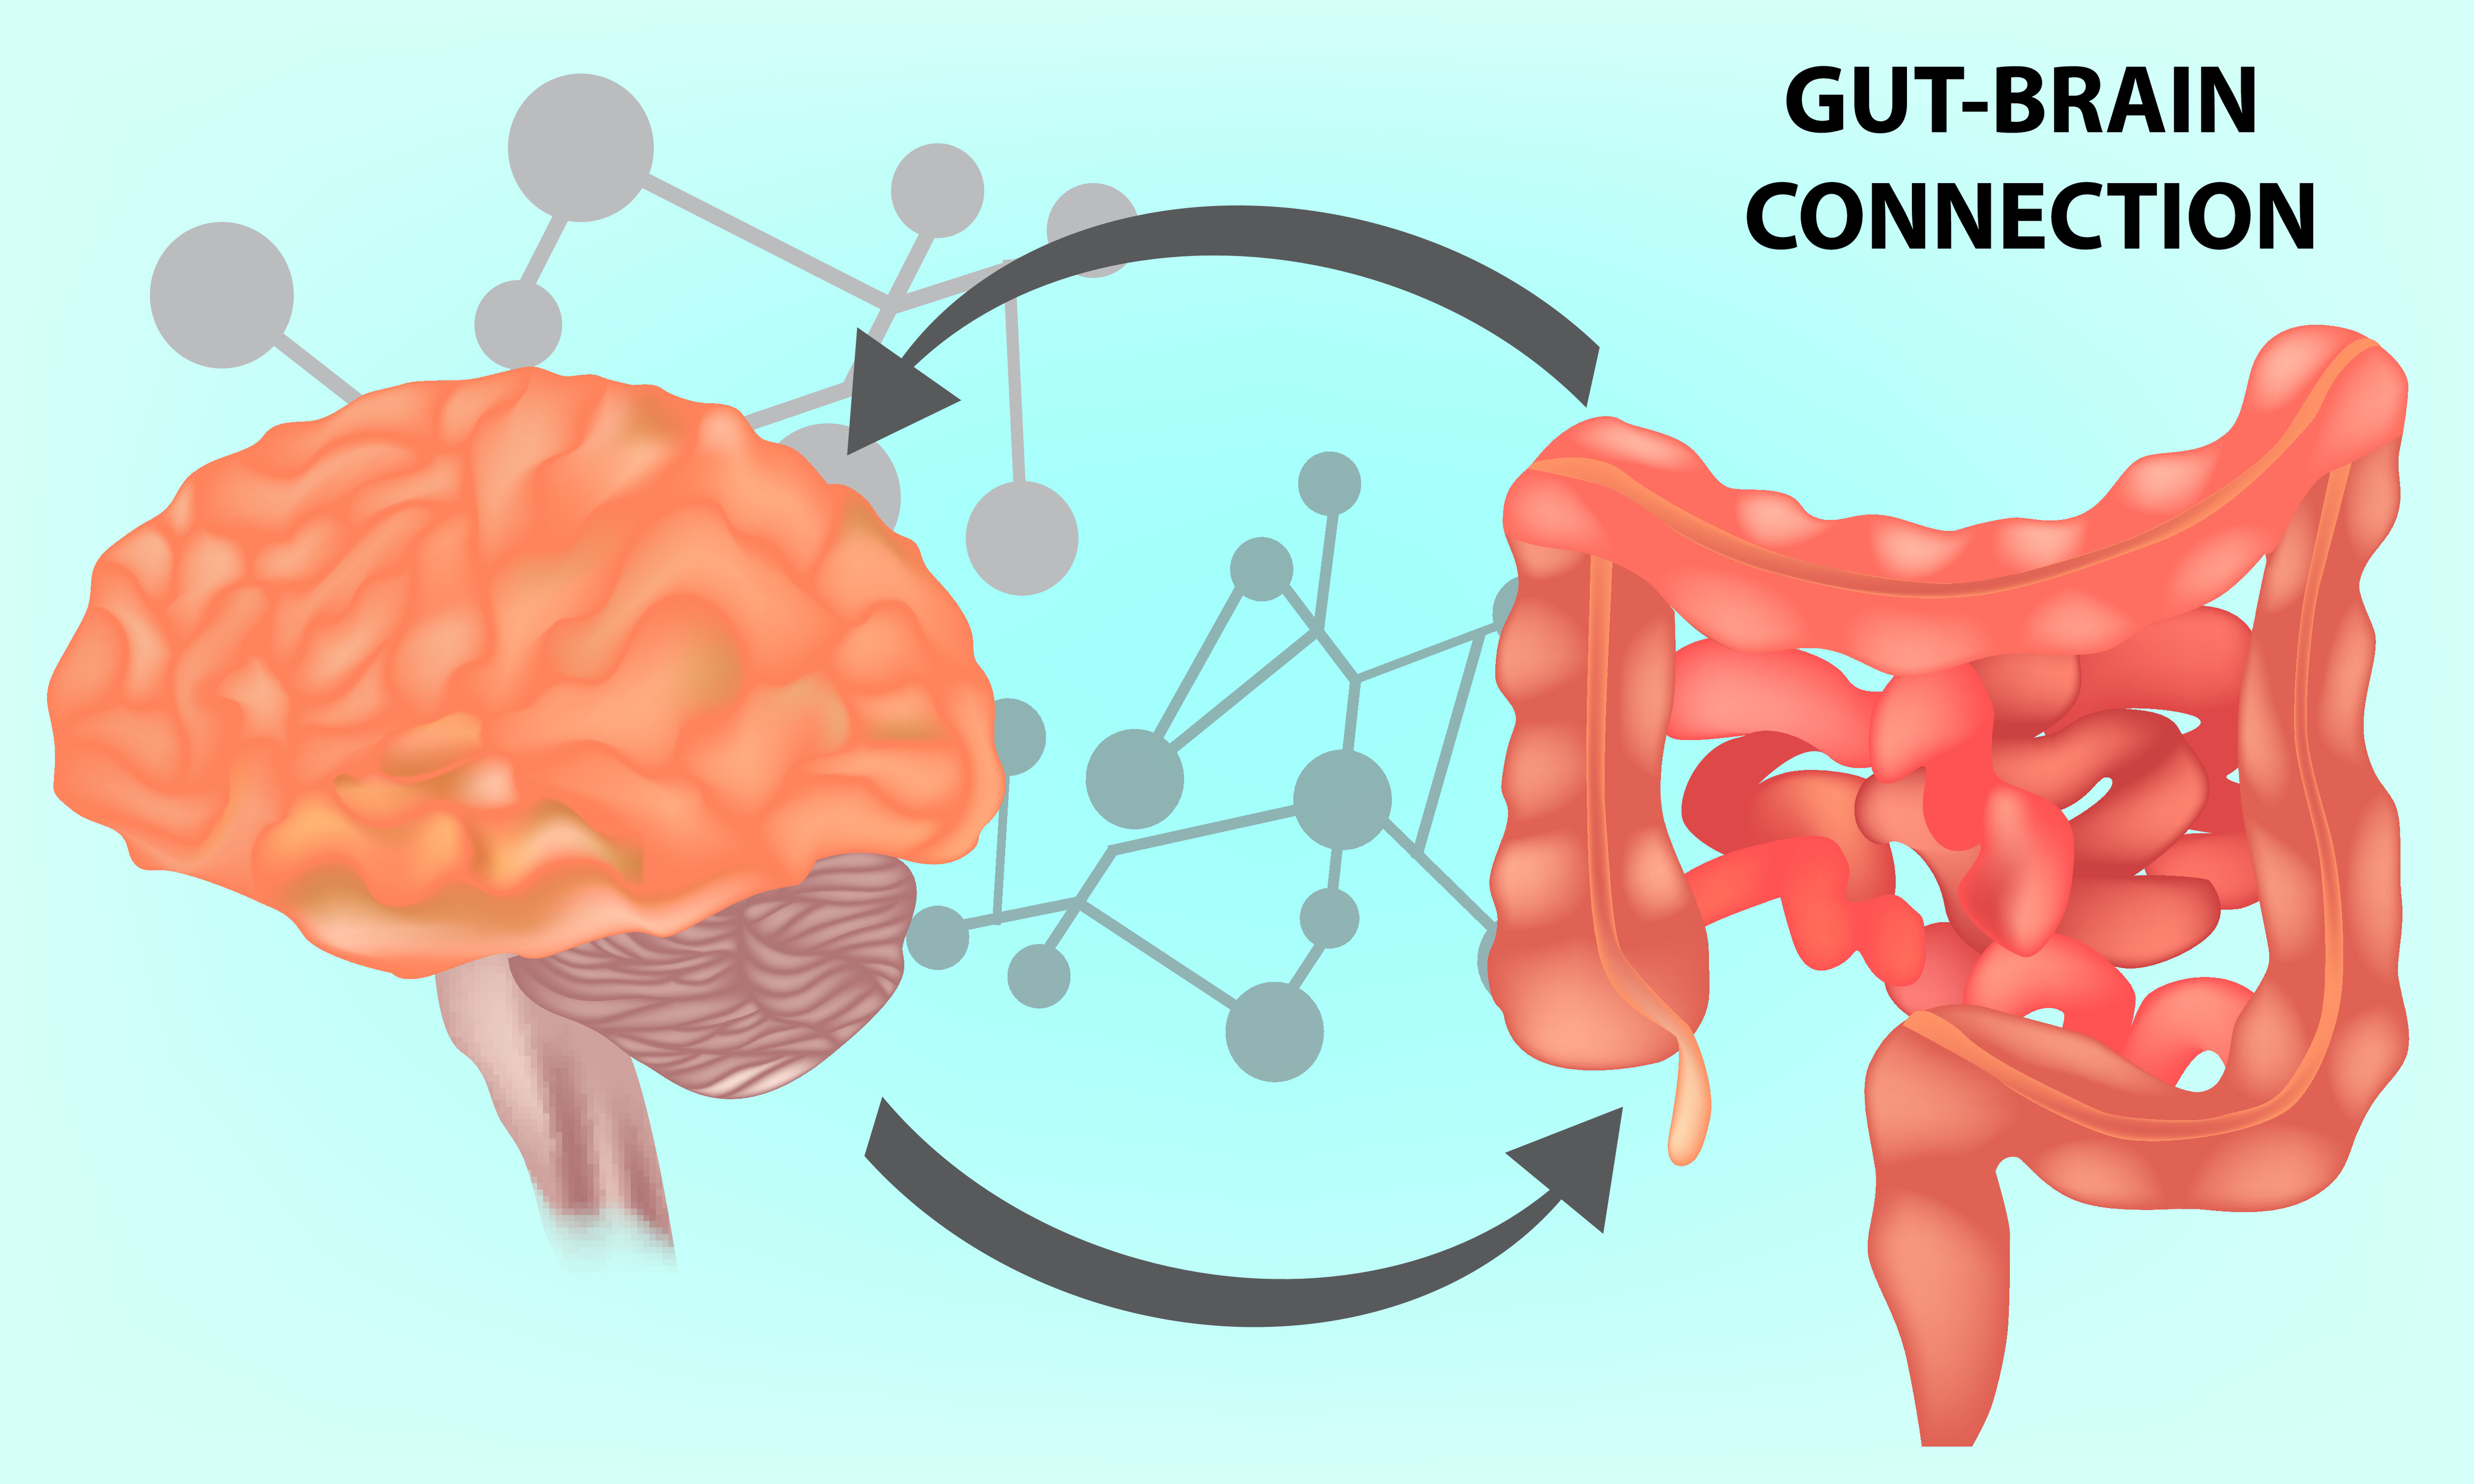 History And Evolution Of Disorders Of Gut-Brain Interaction And The Rome Foundation